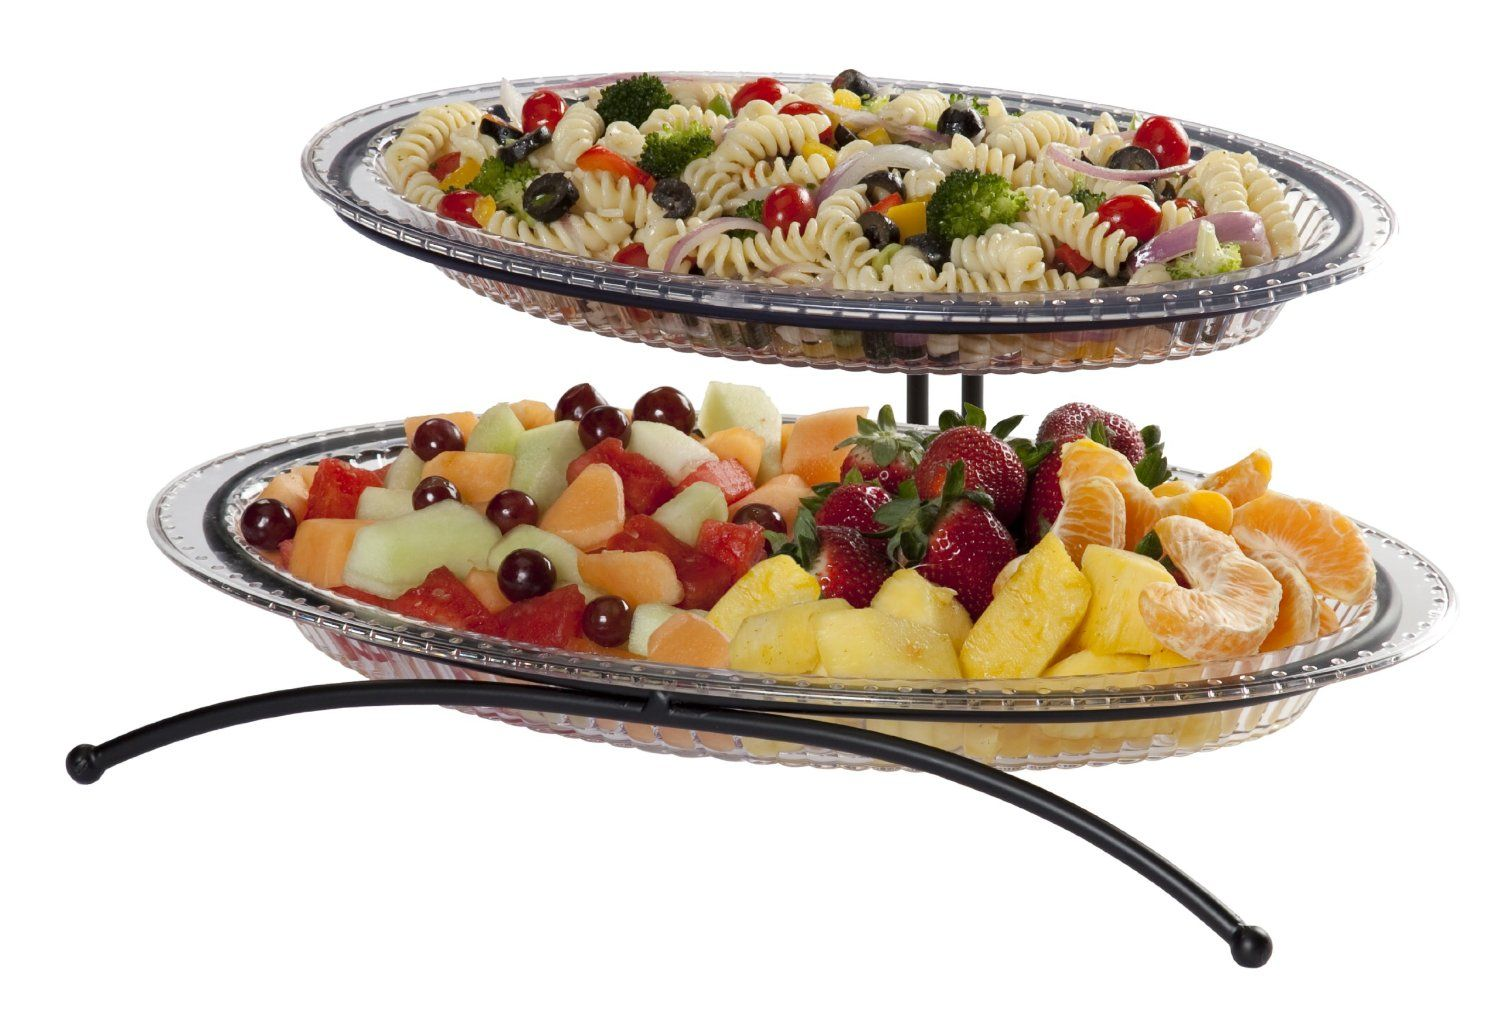 Amazon.com | CreativeWare 2-Tier Buffet Server Includes 1 Small and 1 Larger Platter Tiered Serving Stand Serving Dishes Trays u0026 Platters  sc 1 st  Pinterest & Amazon.com | CreativeWare 2-Tier Buffet Server Includes 1 Small and ...